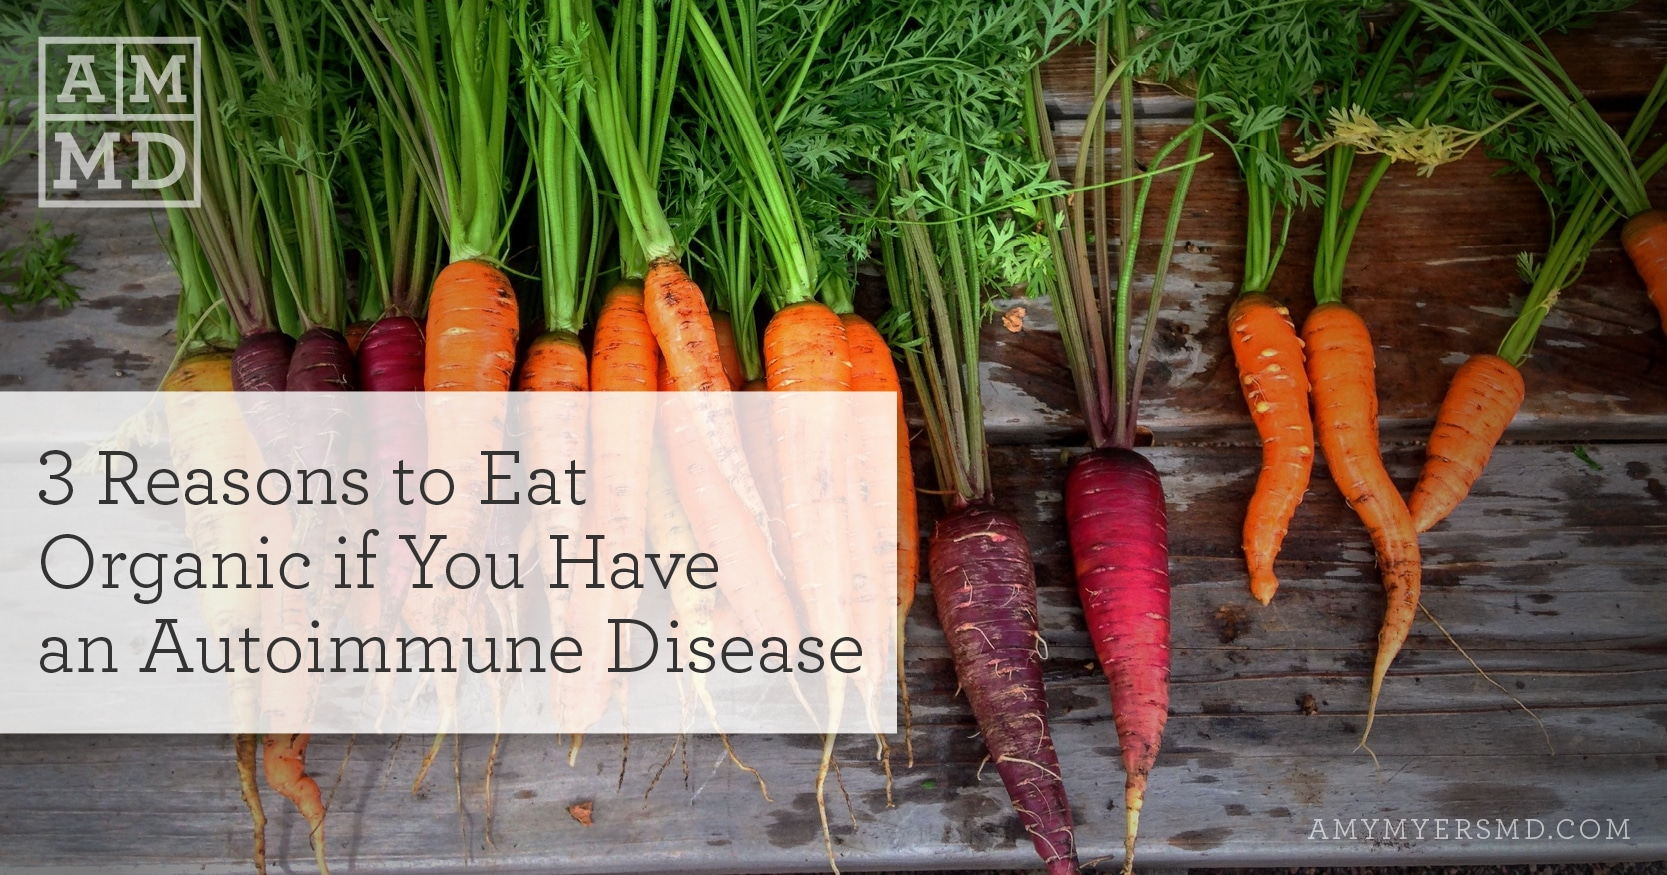 3 Reasons to Eat Organic If You Have an Autoimmune Disease - Carrots - Featured Image - Amy Myers MD